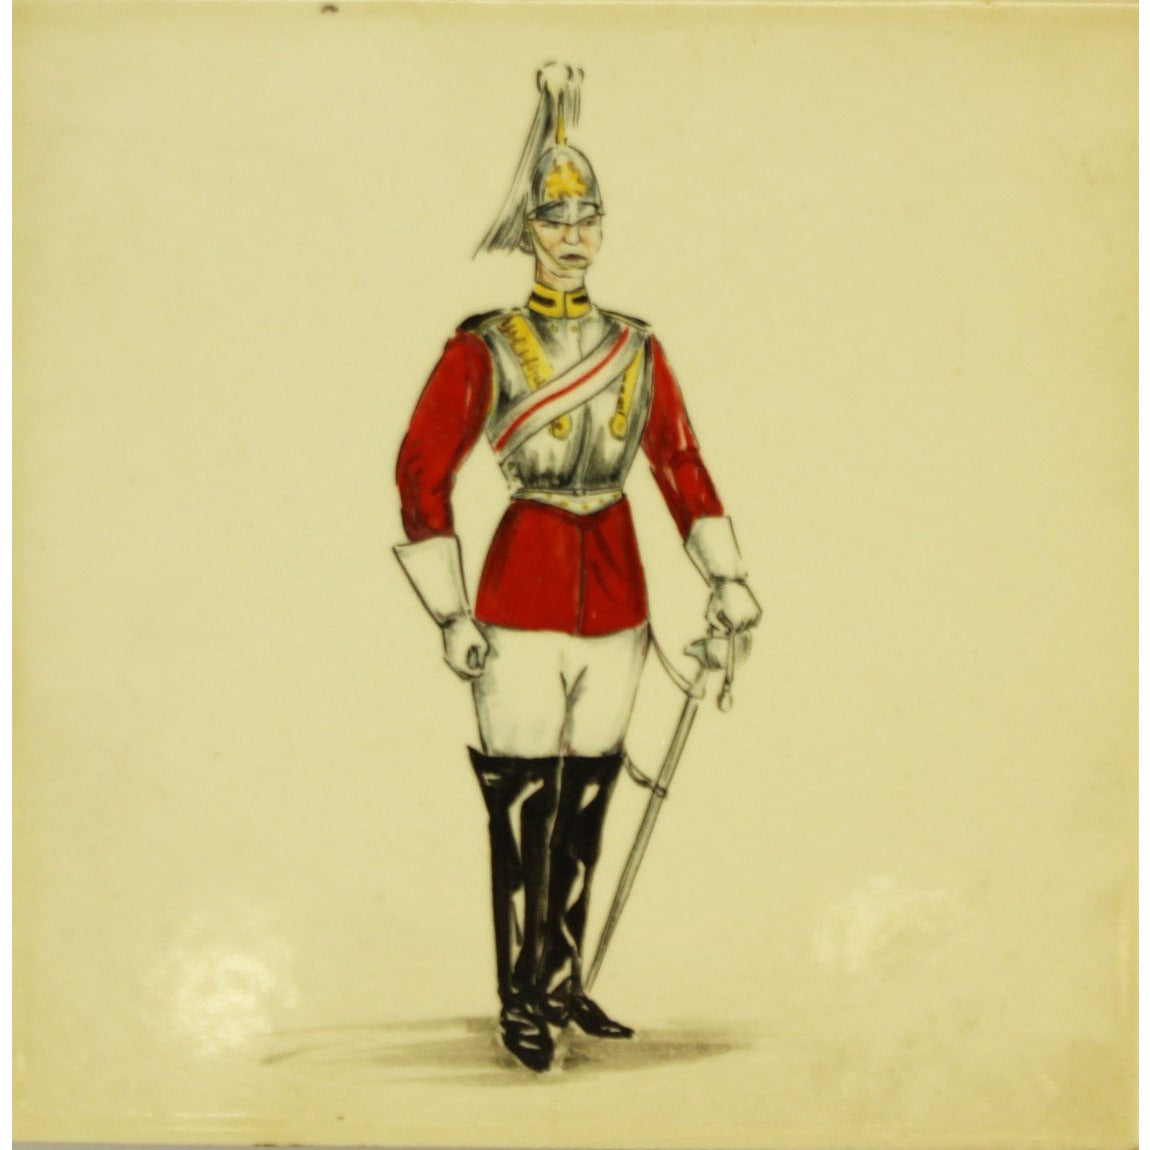 Pilkington English Hand-Painted Royal Officer Tile